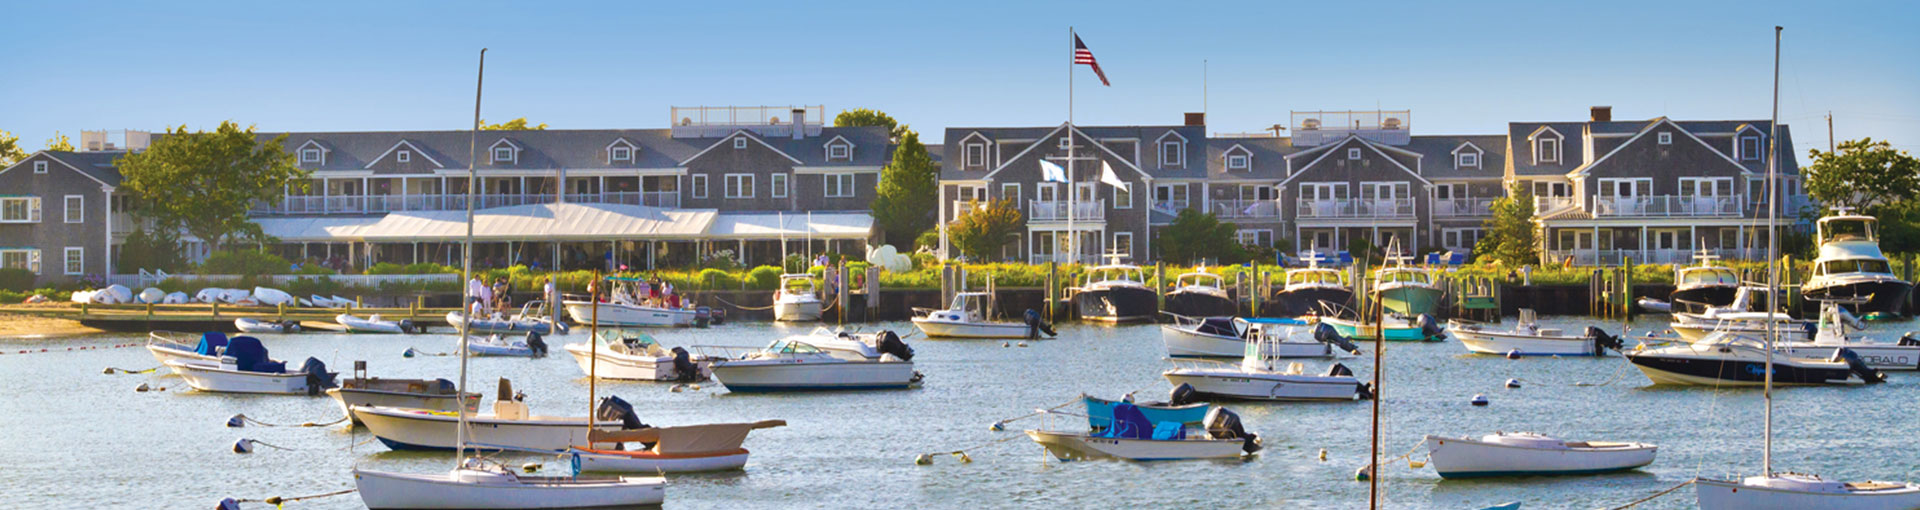 White Elephant Resorts, Nantucket